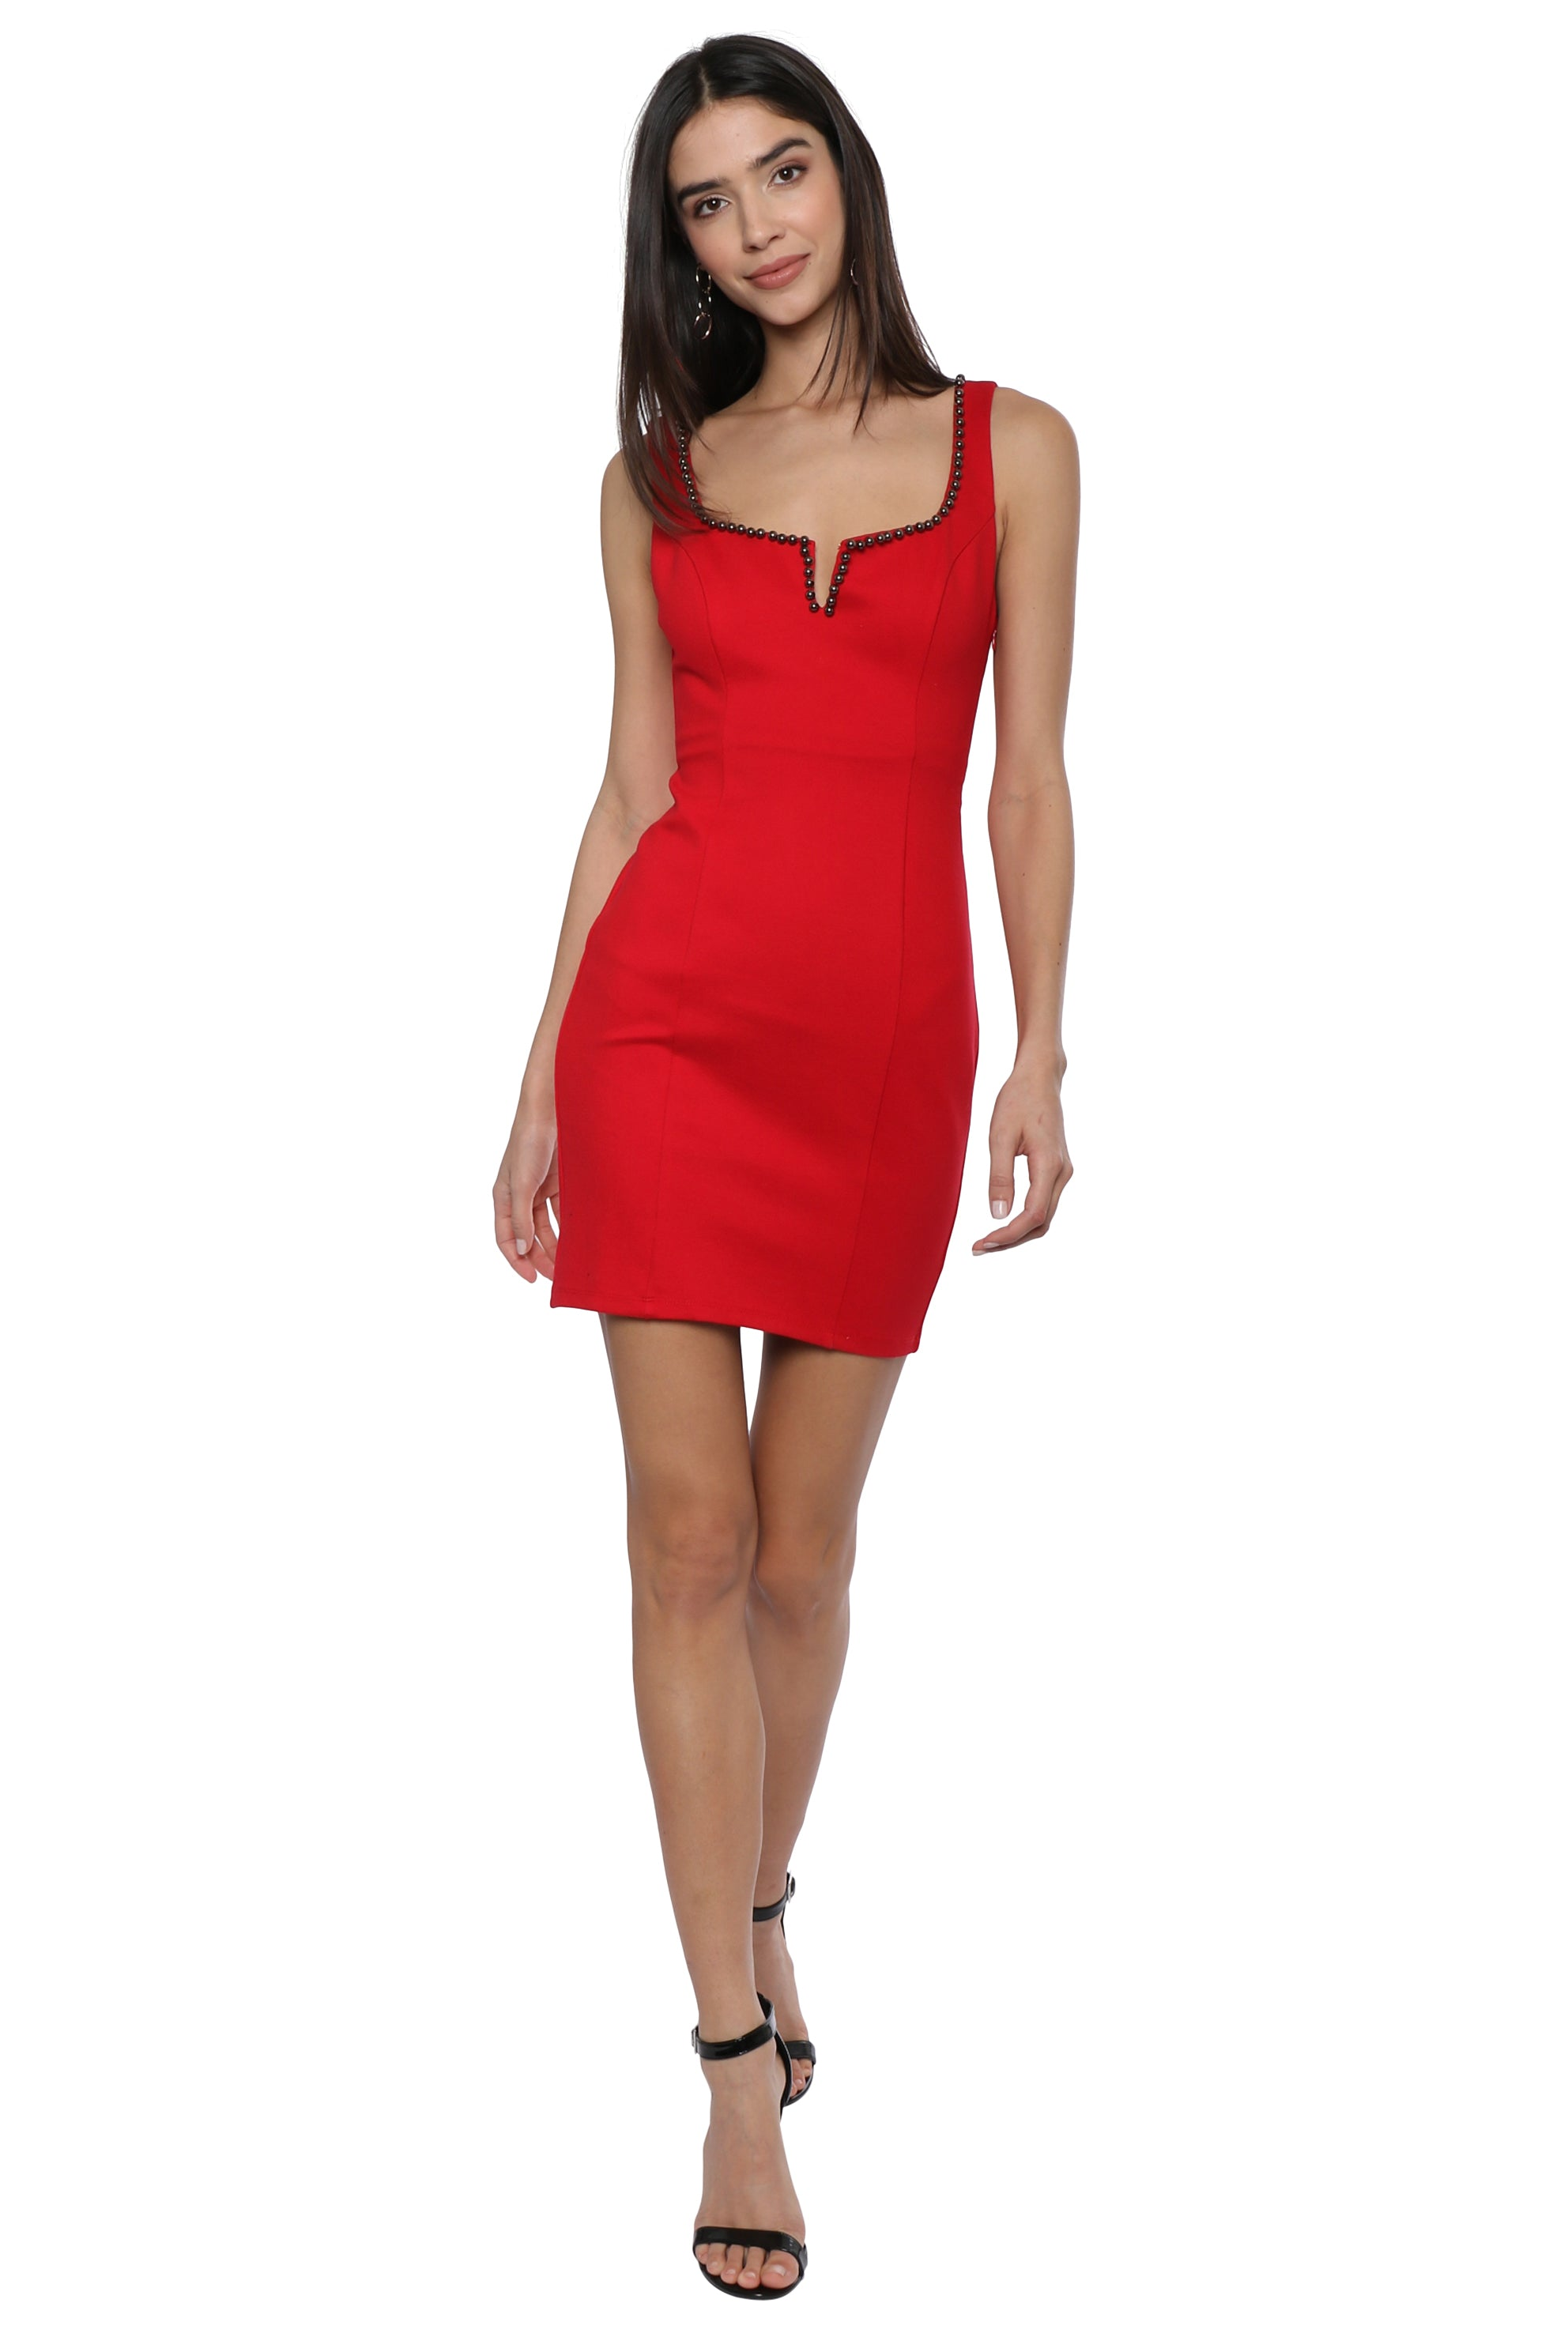 277d90a3db2 ASTR Girls Night Out Dress